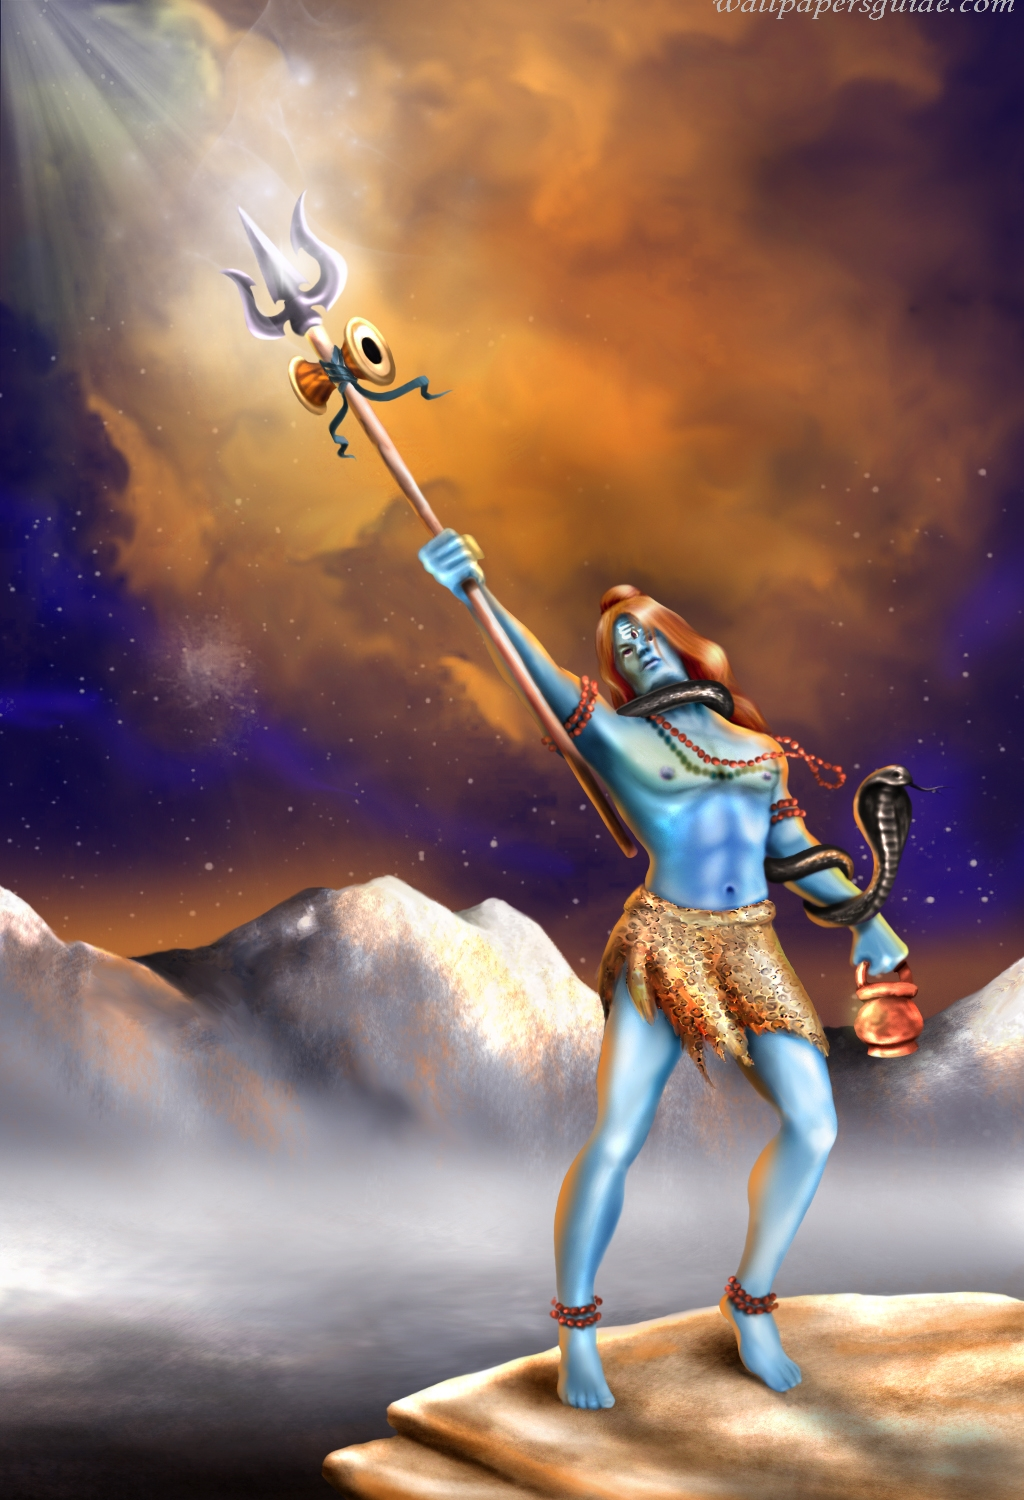 49 Lord Shiva Wallpapers High Resolution On Wallpapersafari